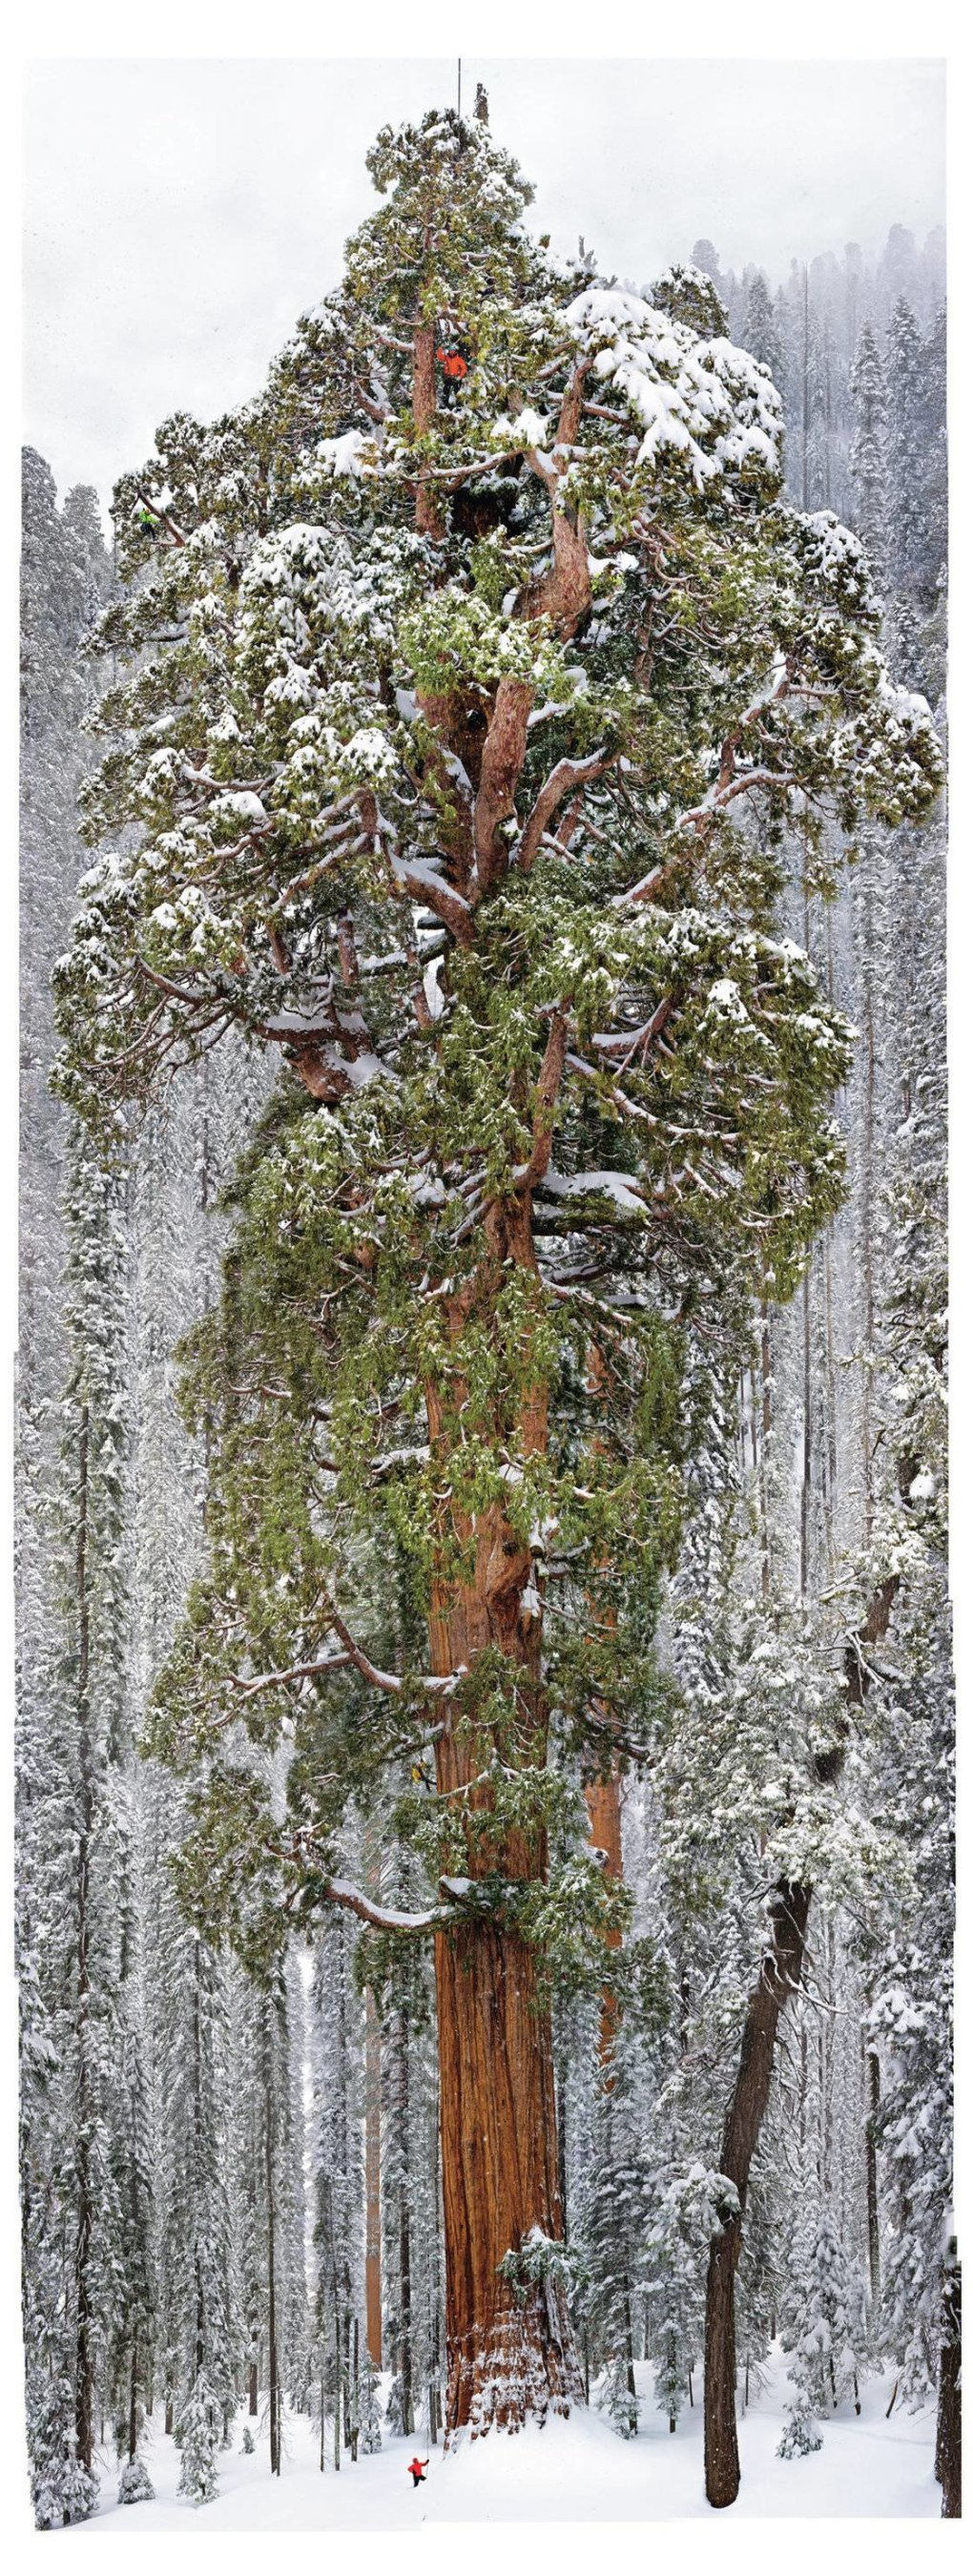 images combined show massiveness year tree sequoia national park